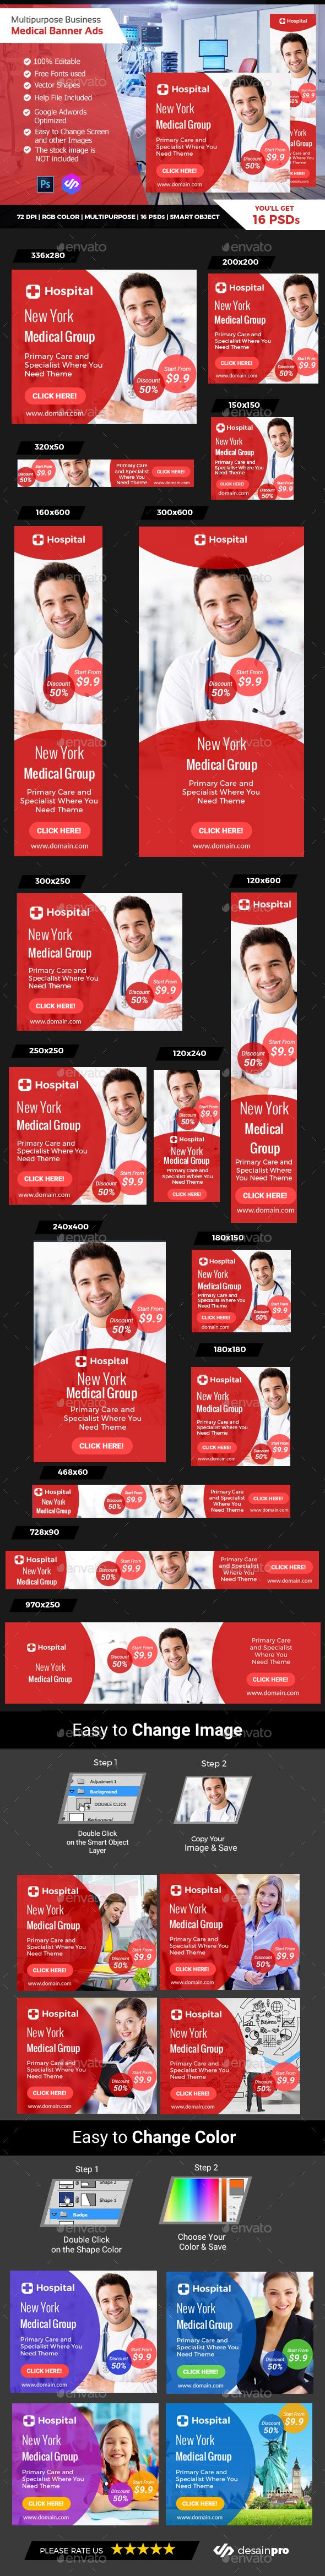 Red Doctor Medical Banner Ads - Banners & Ads Web Elements